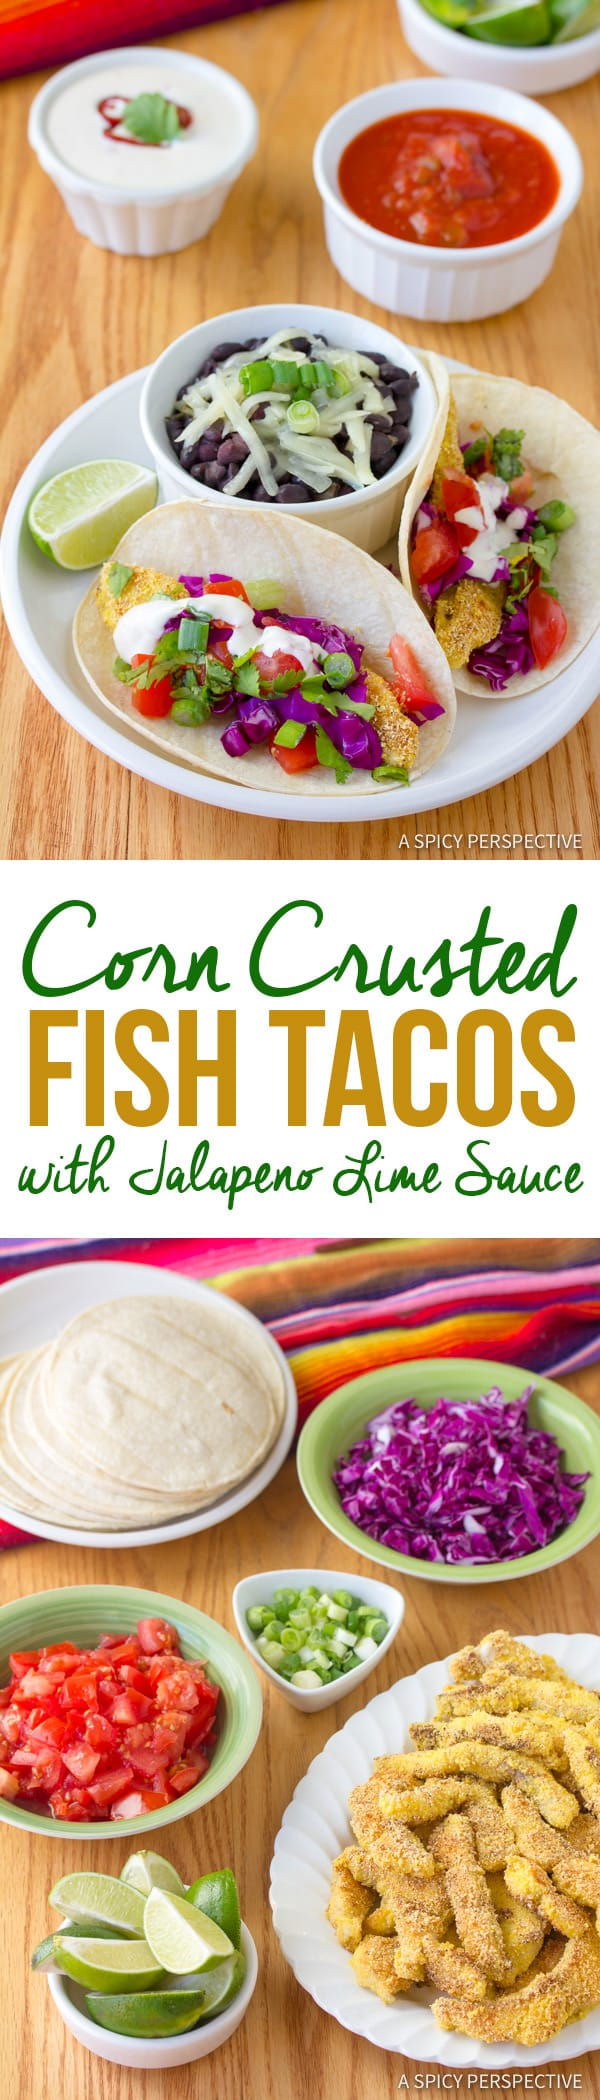 Our Favorite Corn Crusted Fish Tacos with Jalapeno Lime Sauce | ASpicyPerspective.com